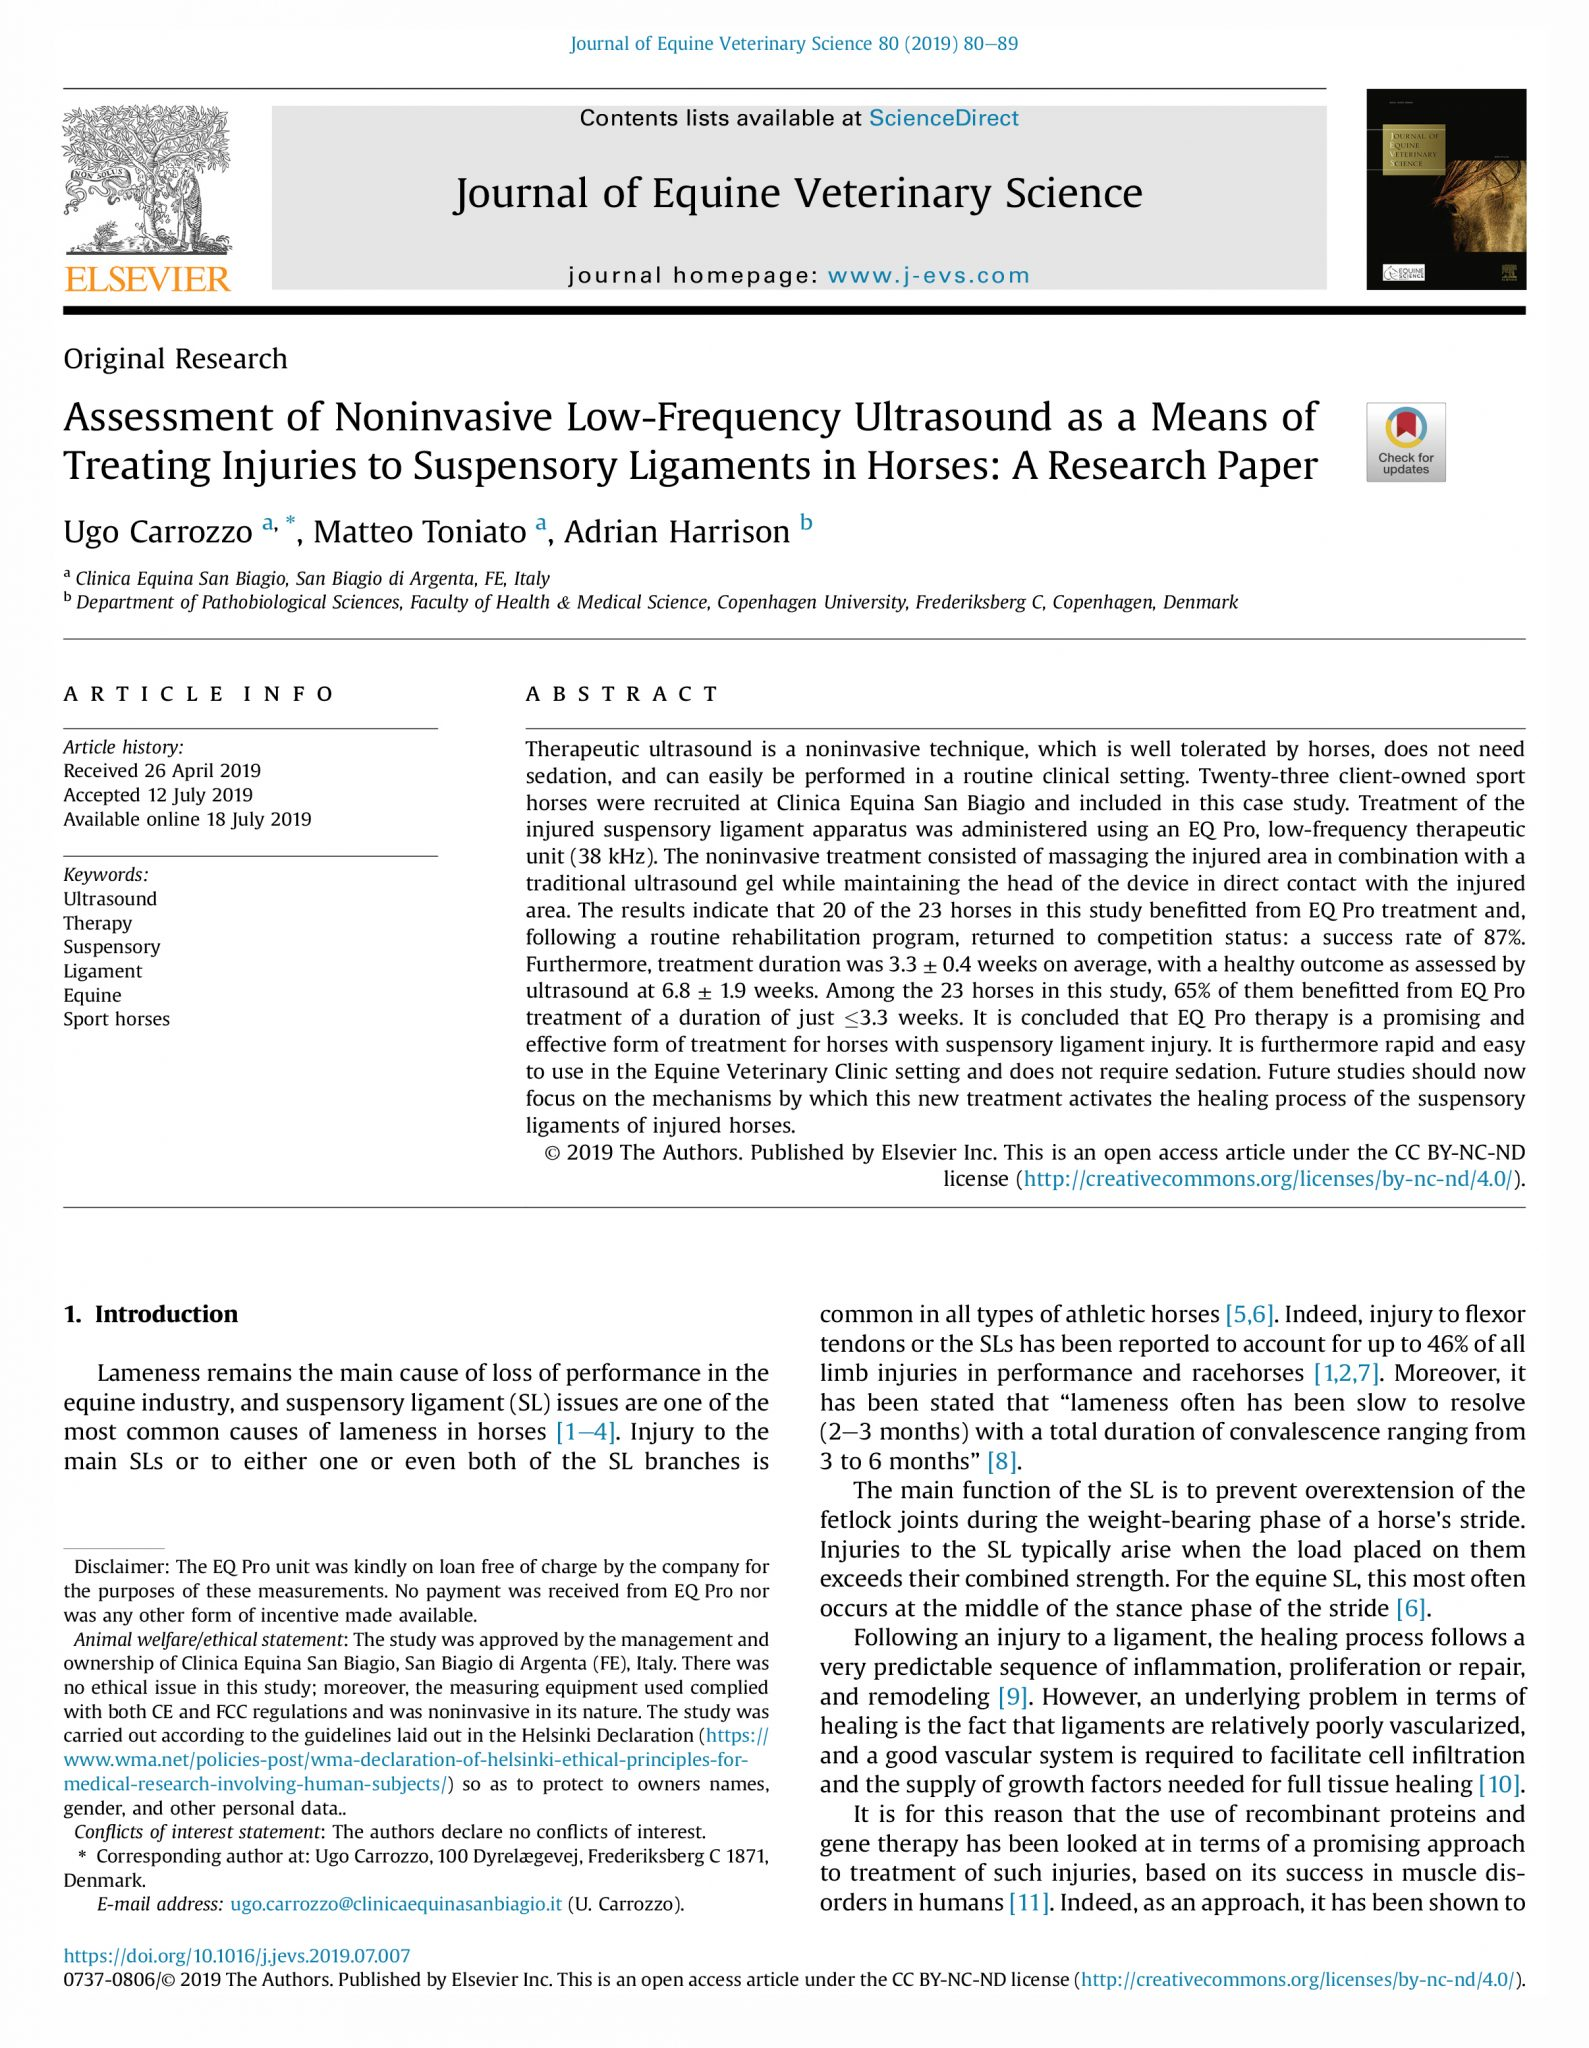 Assessment of Noninvasive Low-Frequency Ultrasound Therapy